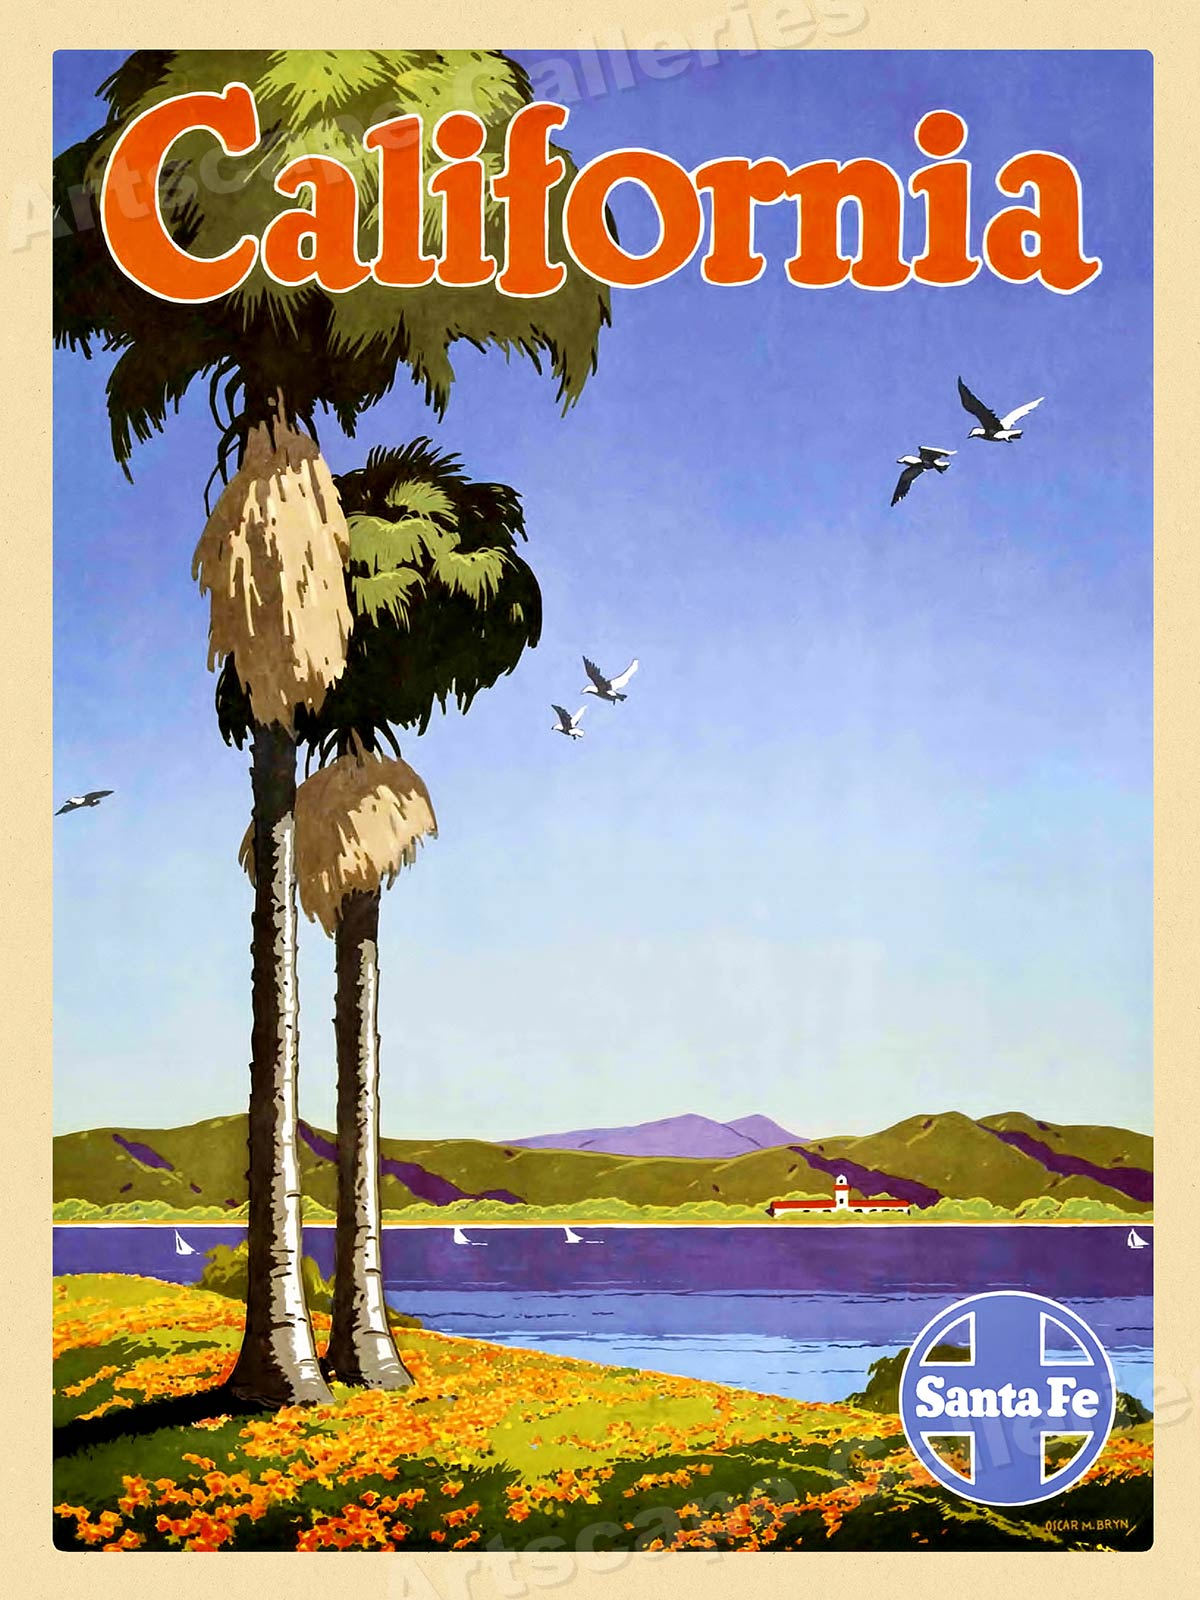 24x36 Santa Fe Back East 1920's Vintage Style Railroad Travel Poster